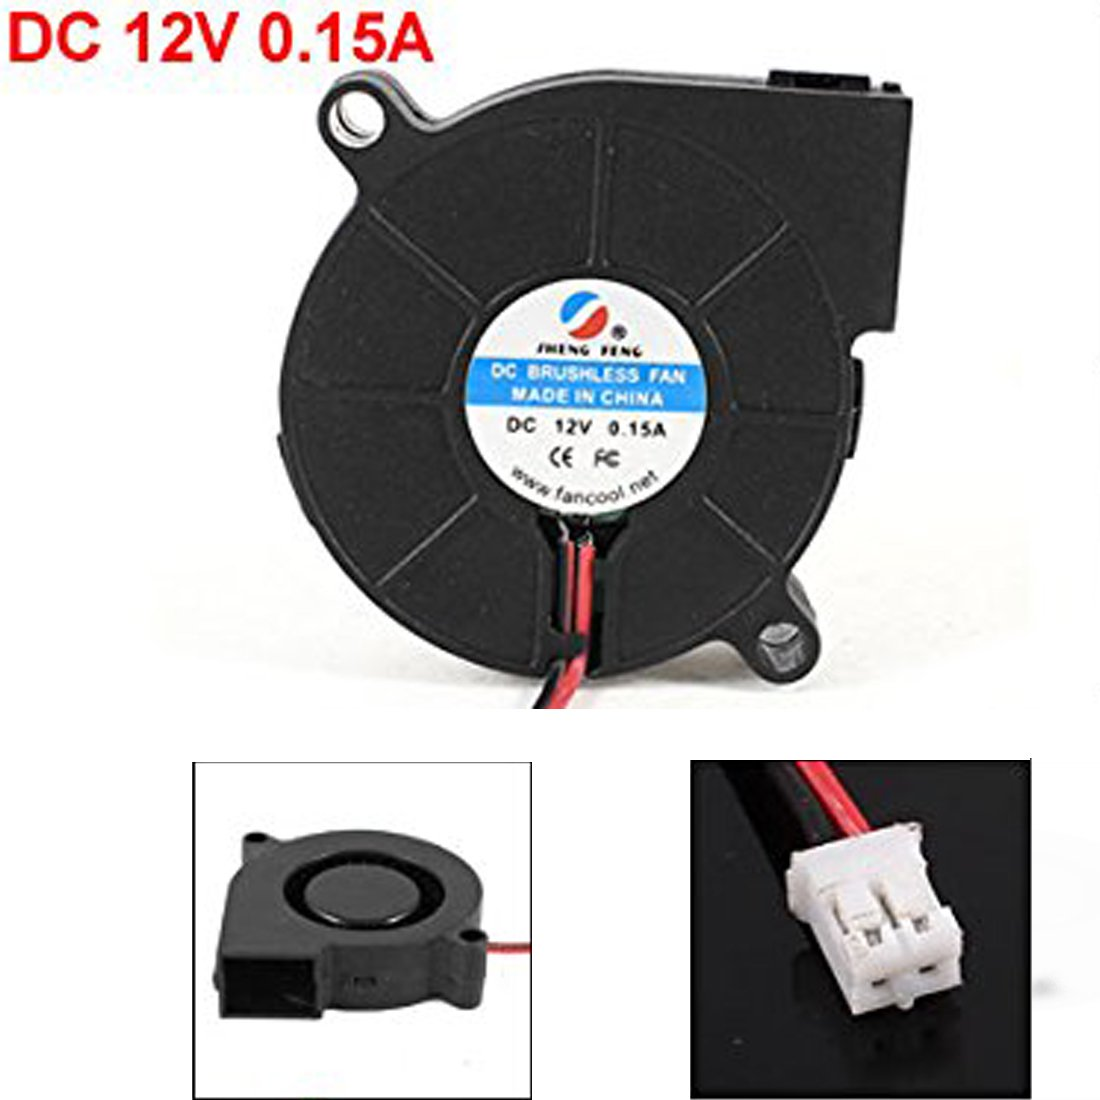 Amazon.com: DC 12V 0.15A 2 Pin Connector Cooling Blower Fan ...